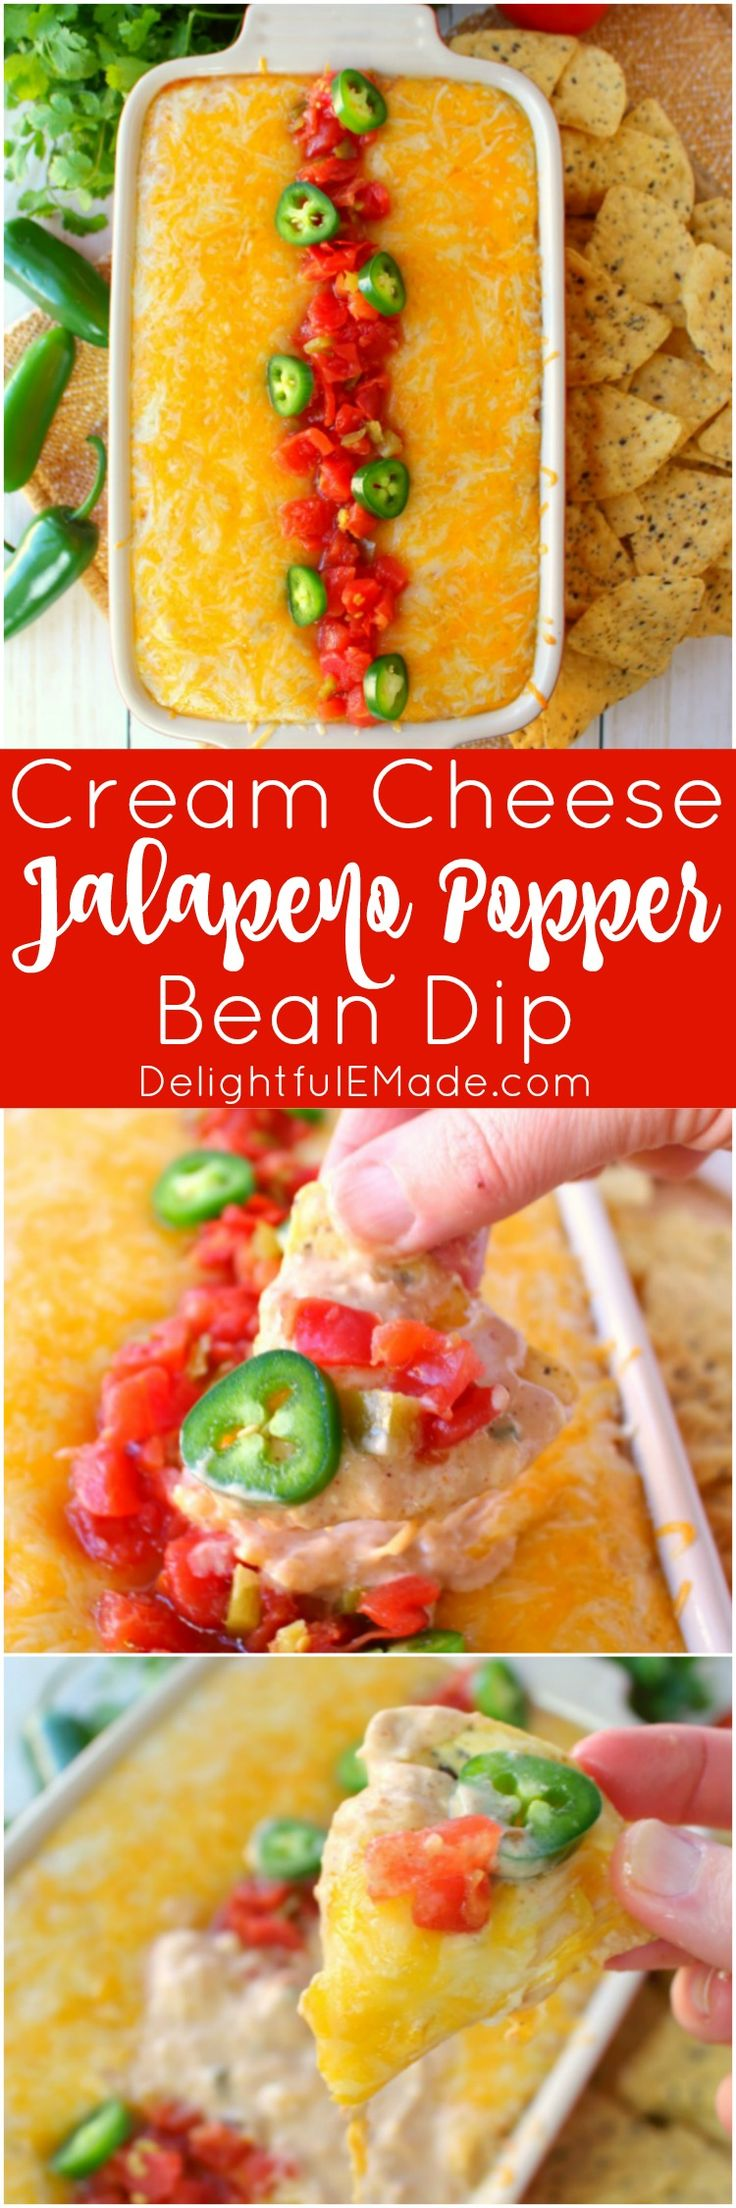 Jalapeno Popper Dip doesn't get much better than this! Made with Ro*Tel and Rosarita Refried Beans this hot cream cheese bean dip recipe is perfect for game day or anytime you want a delicious dip for snacking. #AD #WinTheCrowdWM